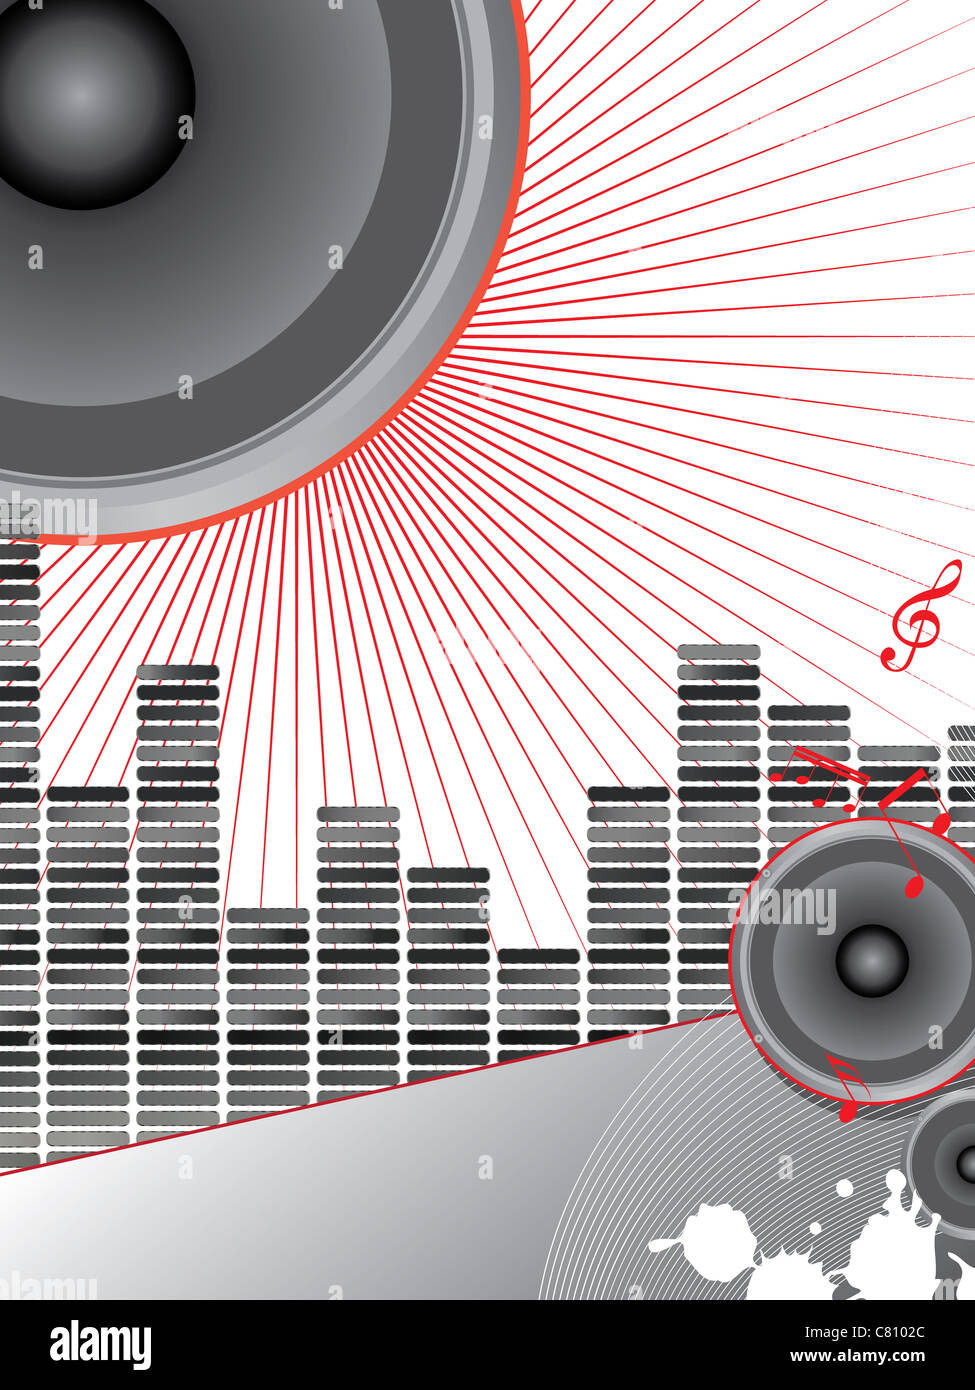 musical theme with loudspeakers and music notes Stock Photo